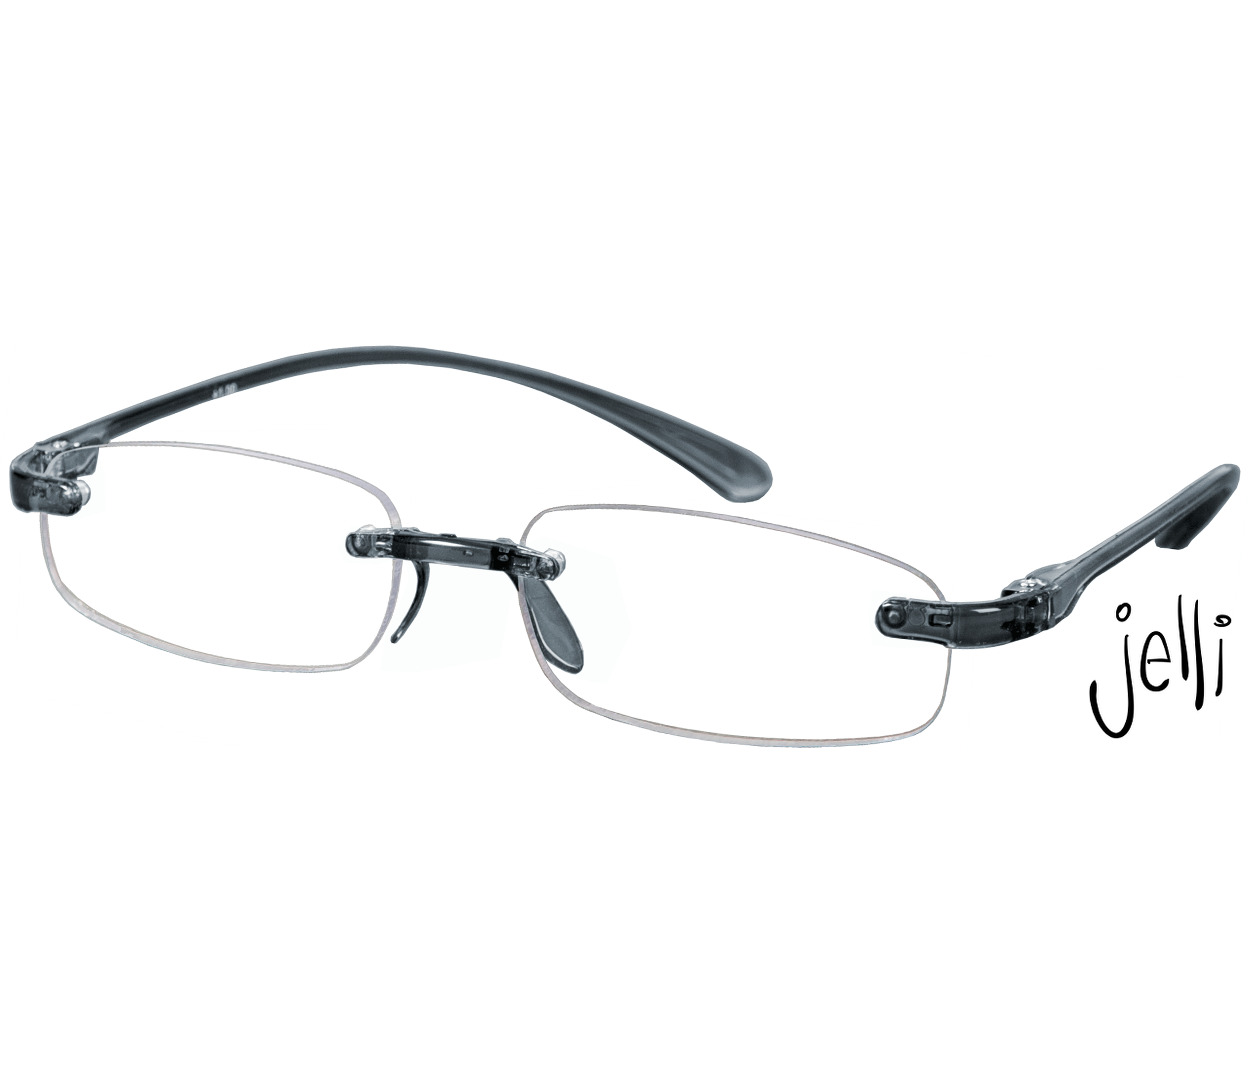 Main Image (Angle) - Jelli (Grey) Rimless Reading Glasses